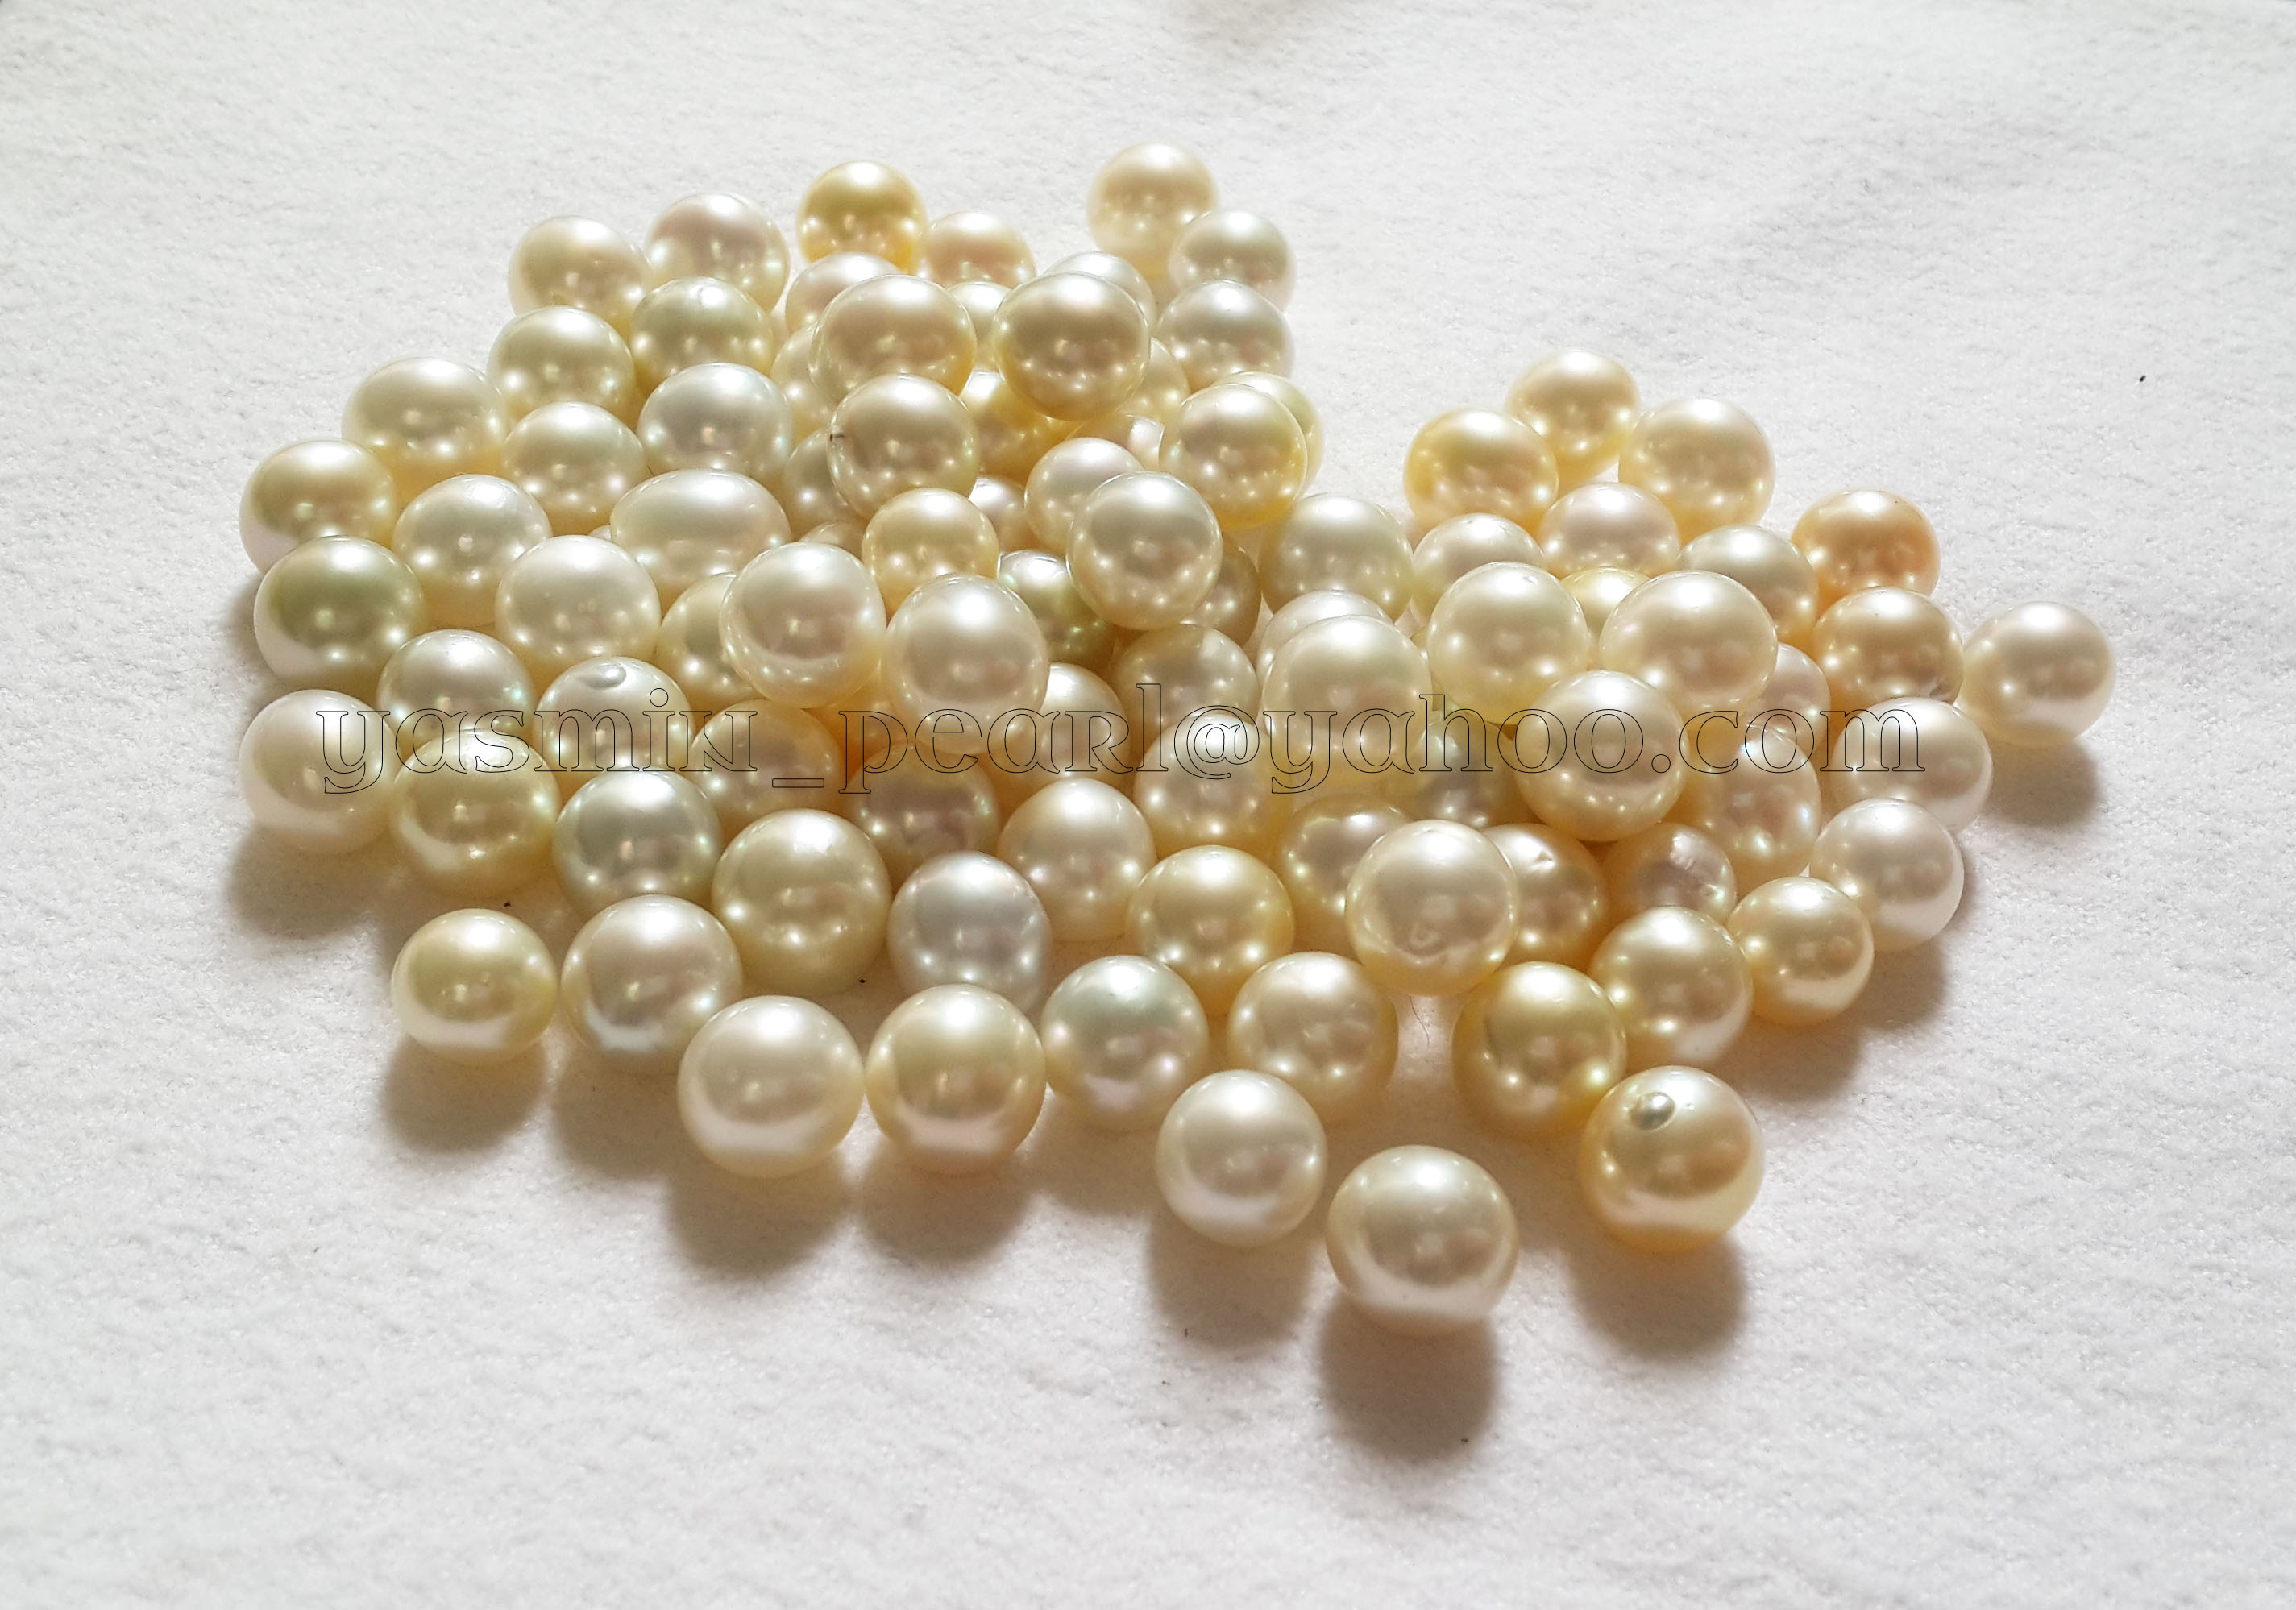 pearls melbourne south our jewellery xsouth australia ic collections h sea pagespeed collection pearl